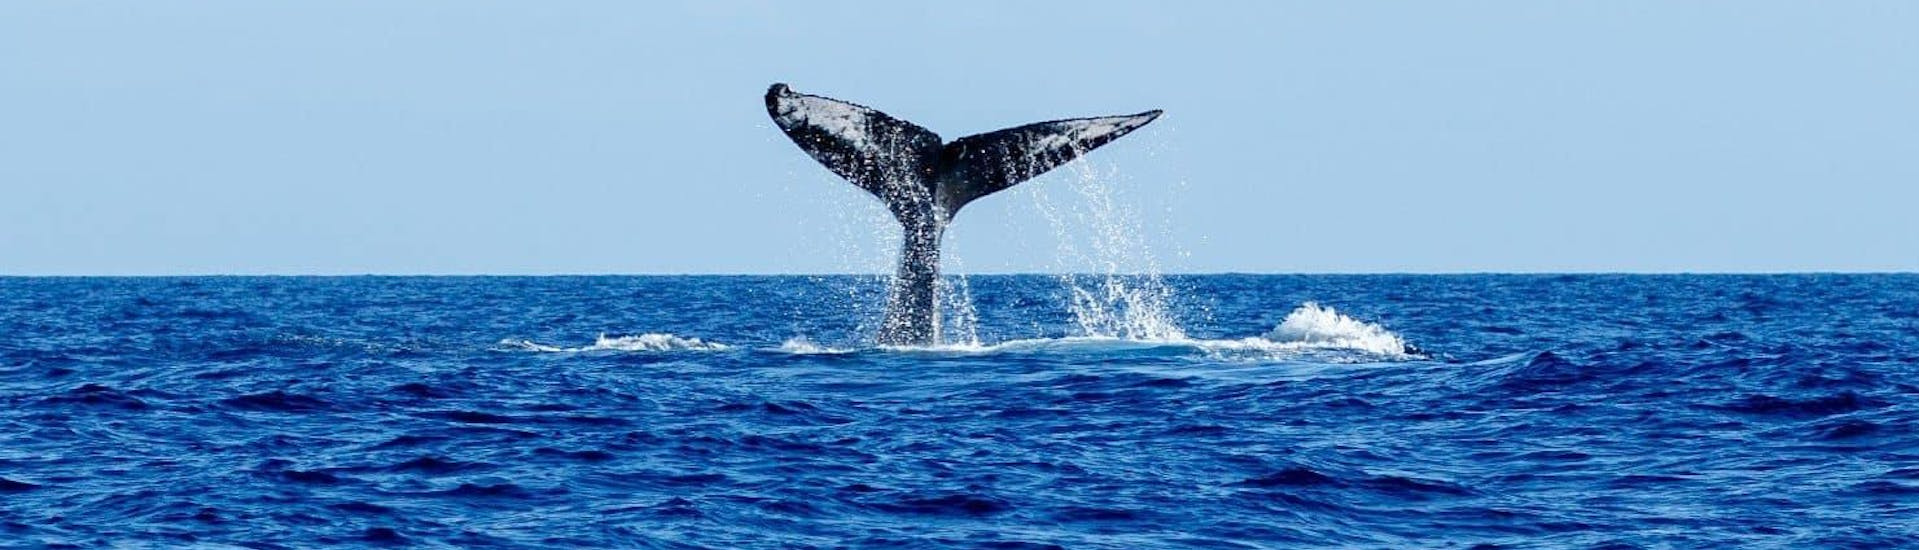 Whale Watching Tour from Caniçal